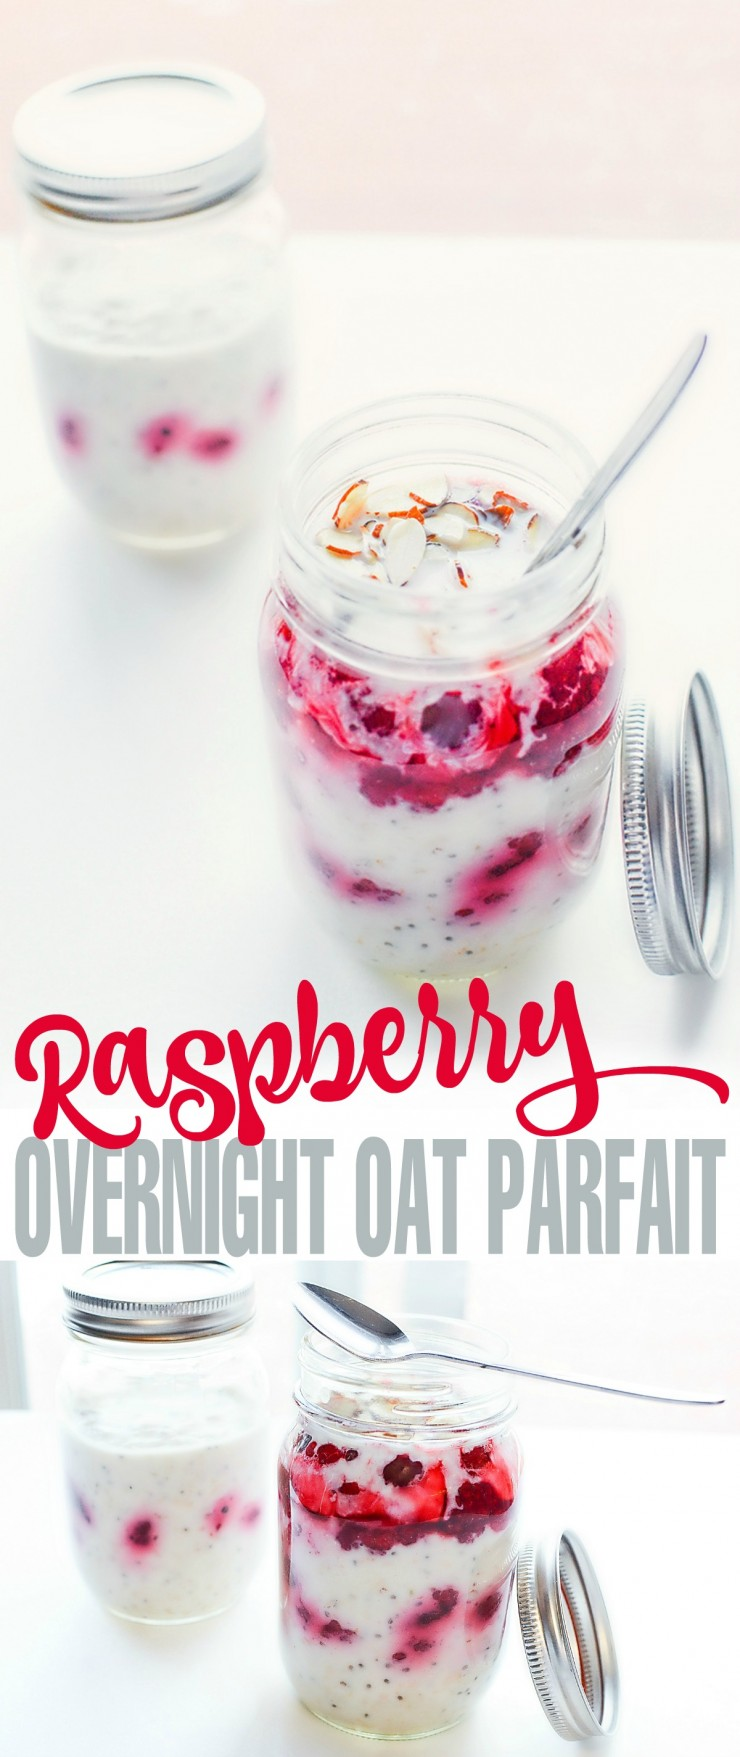 This Raspberry Overnight Oats Recipe is a delicious and healthy breakfast you can prep ahead of time for breakfast on-the-go - or from the comfort of home.